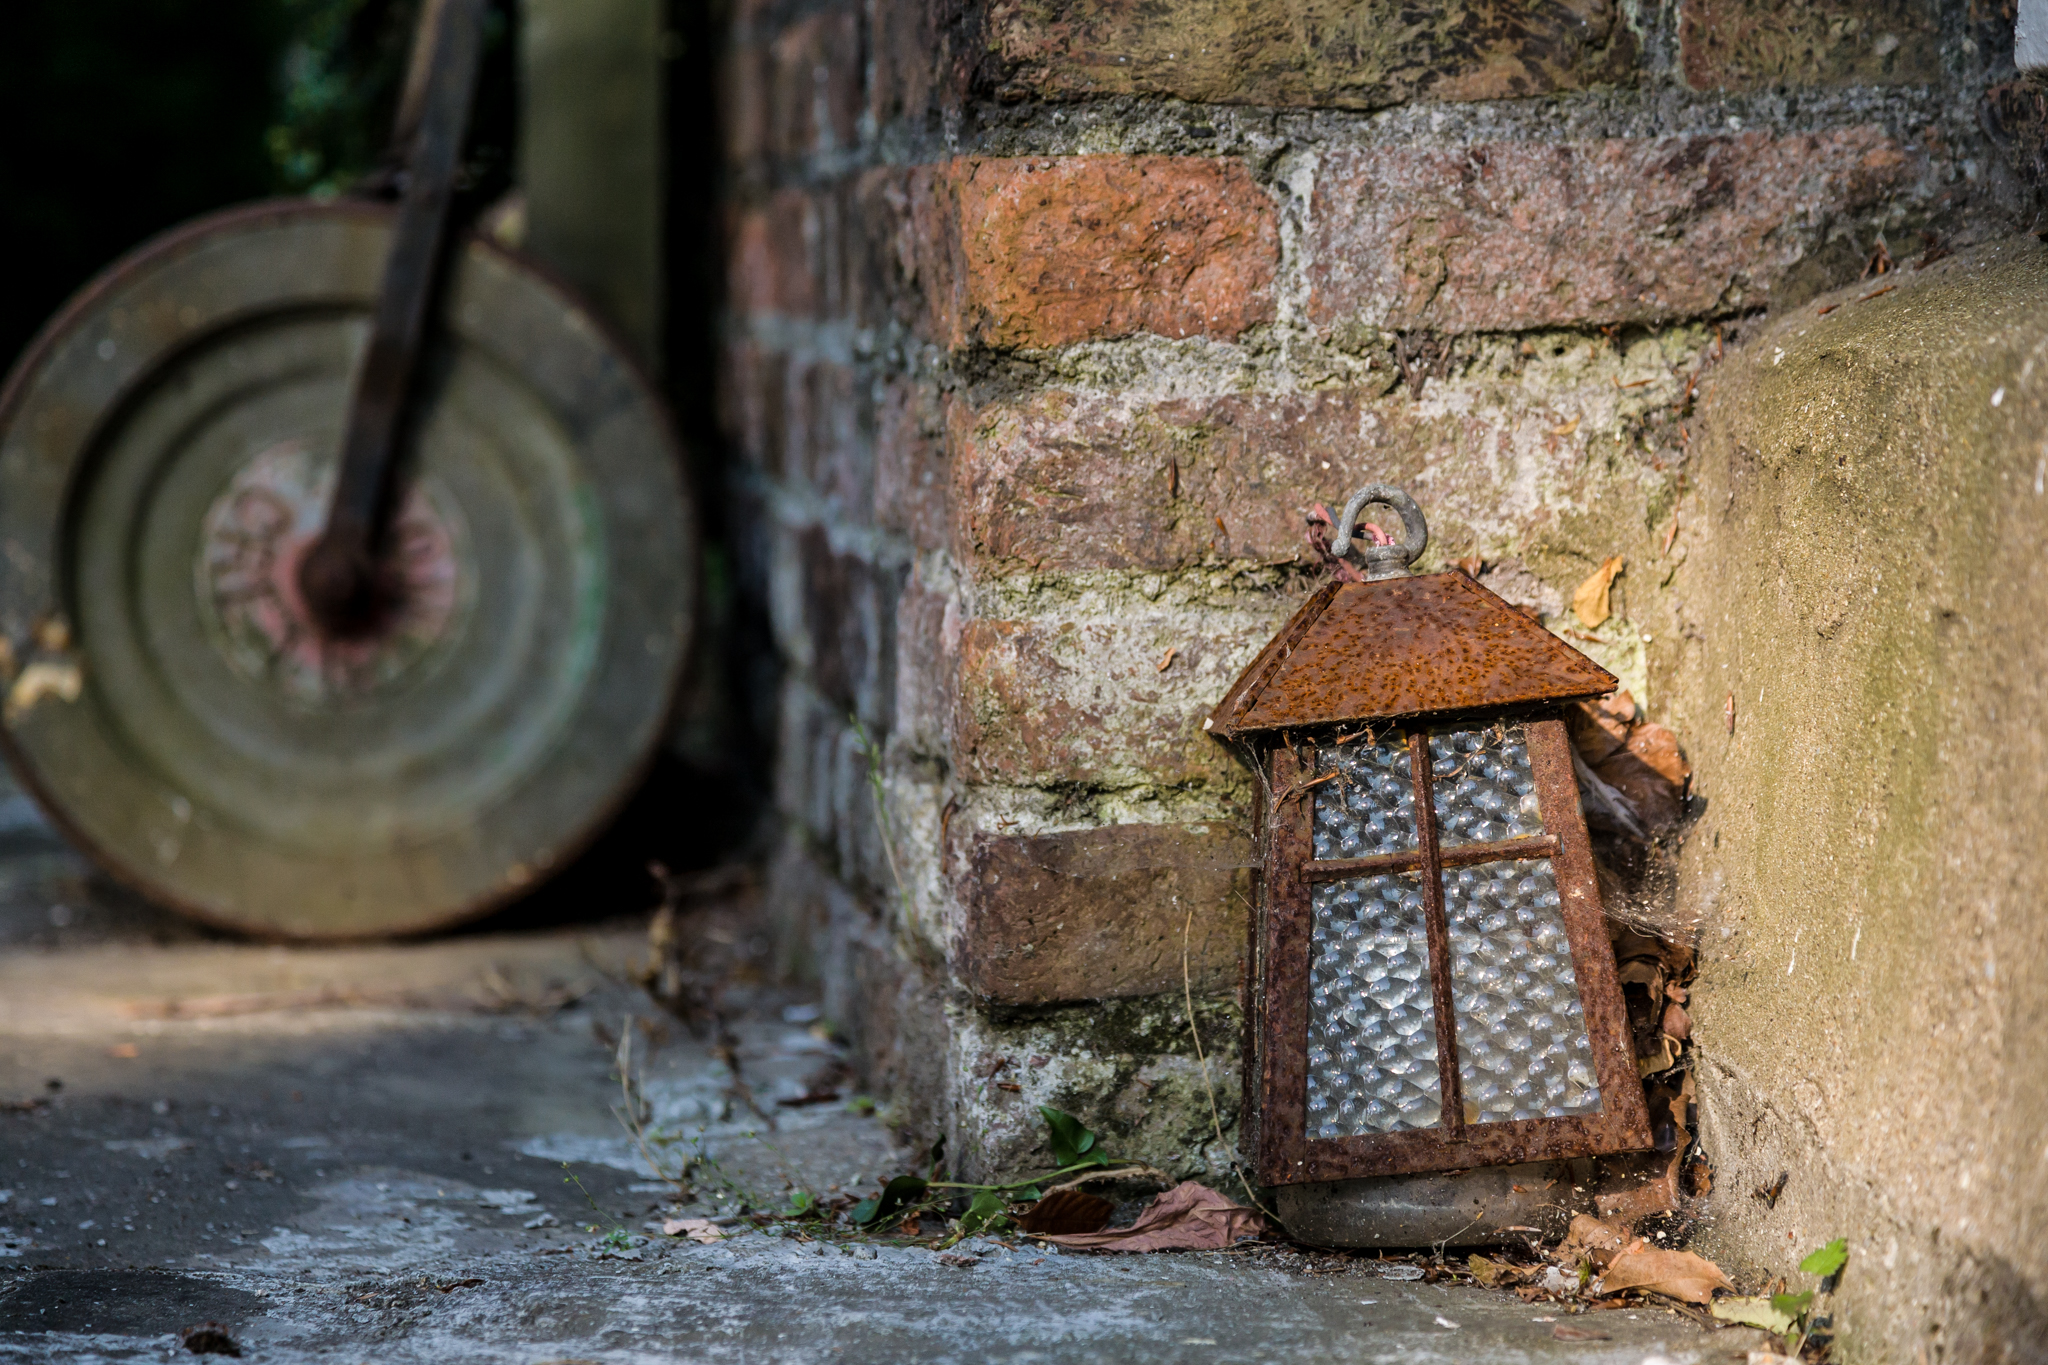 This storm lantern had been left neglected in a corner of a garden for many decades and had become home to many spiders and other insects.